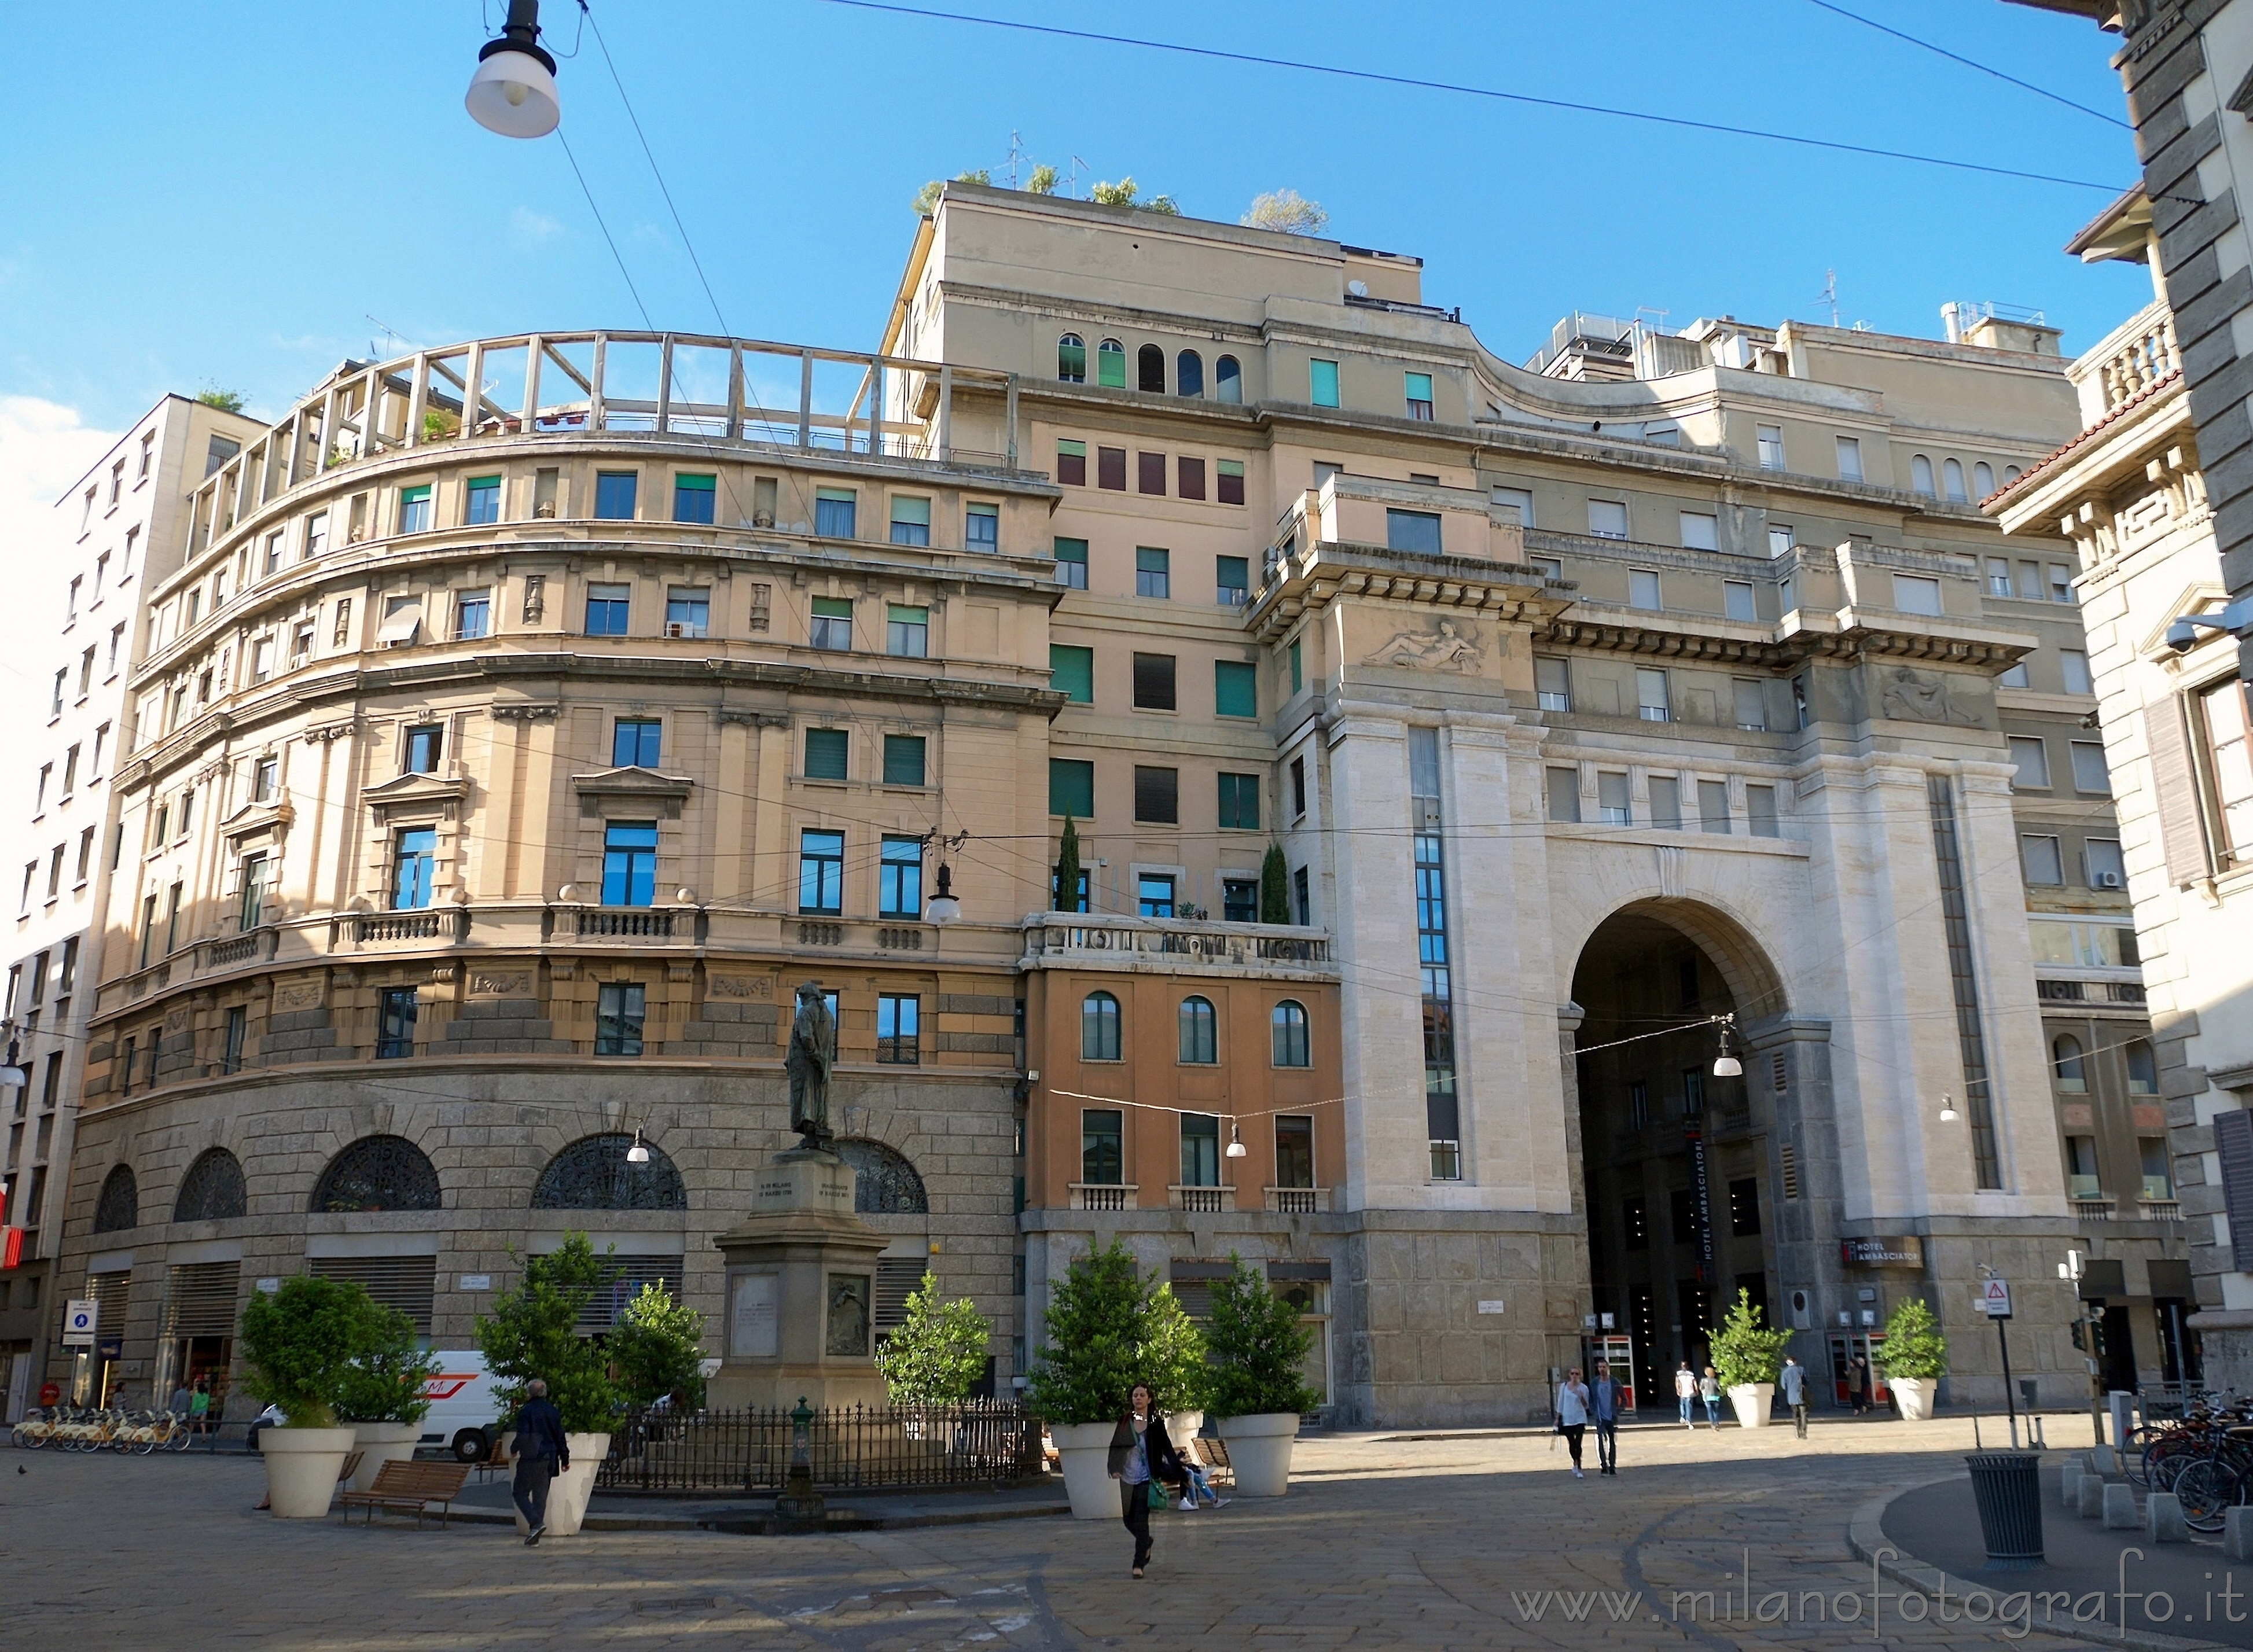 Milan (Italy): Elegant building complex in the center - Milan (Italy)